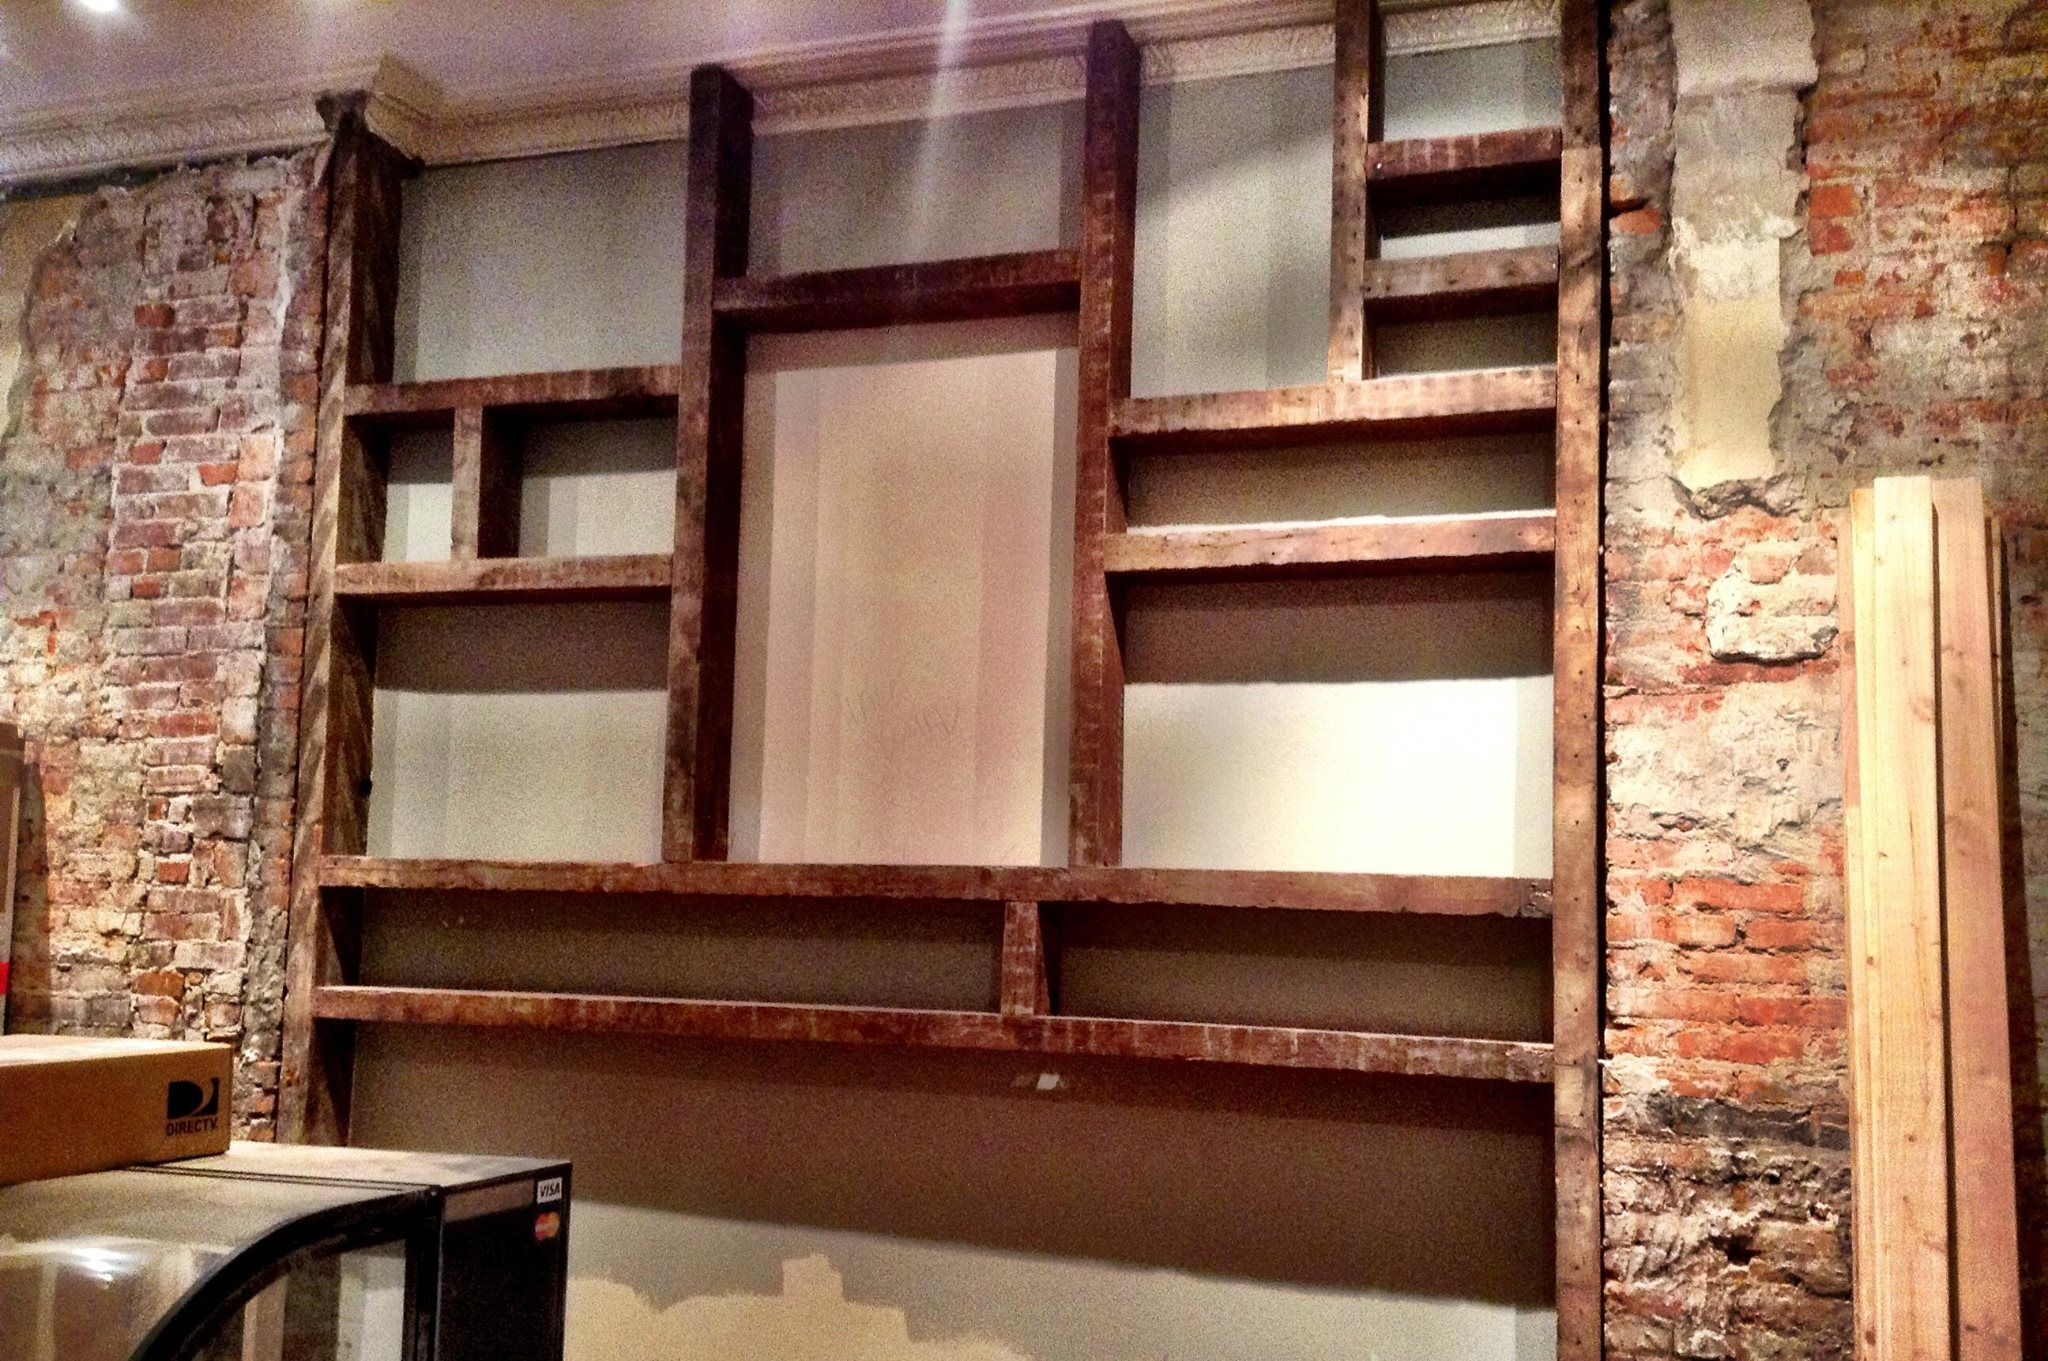 Custom Built Shelves From Reclaimed Wood For The Great Room Book